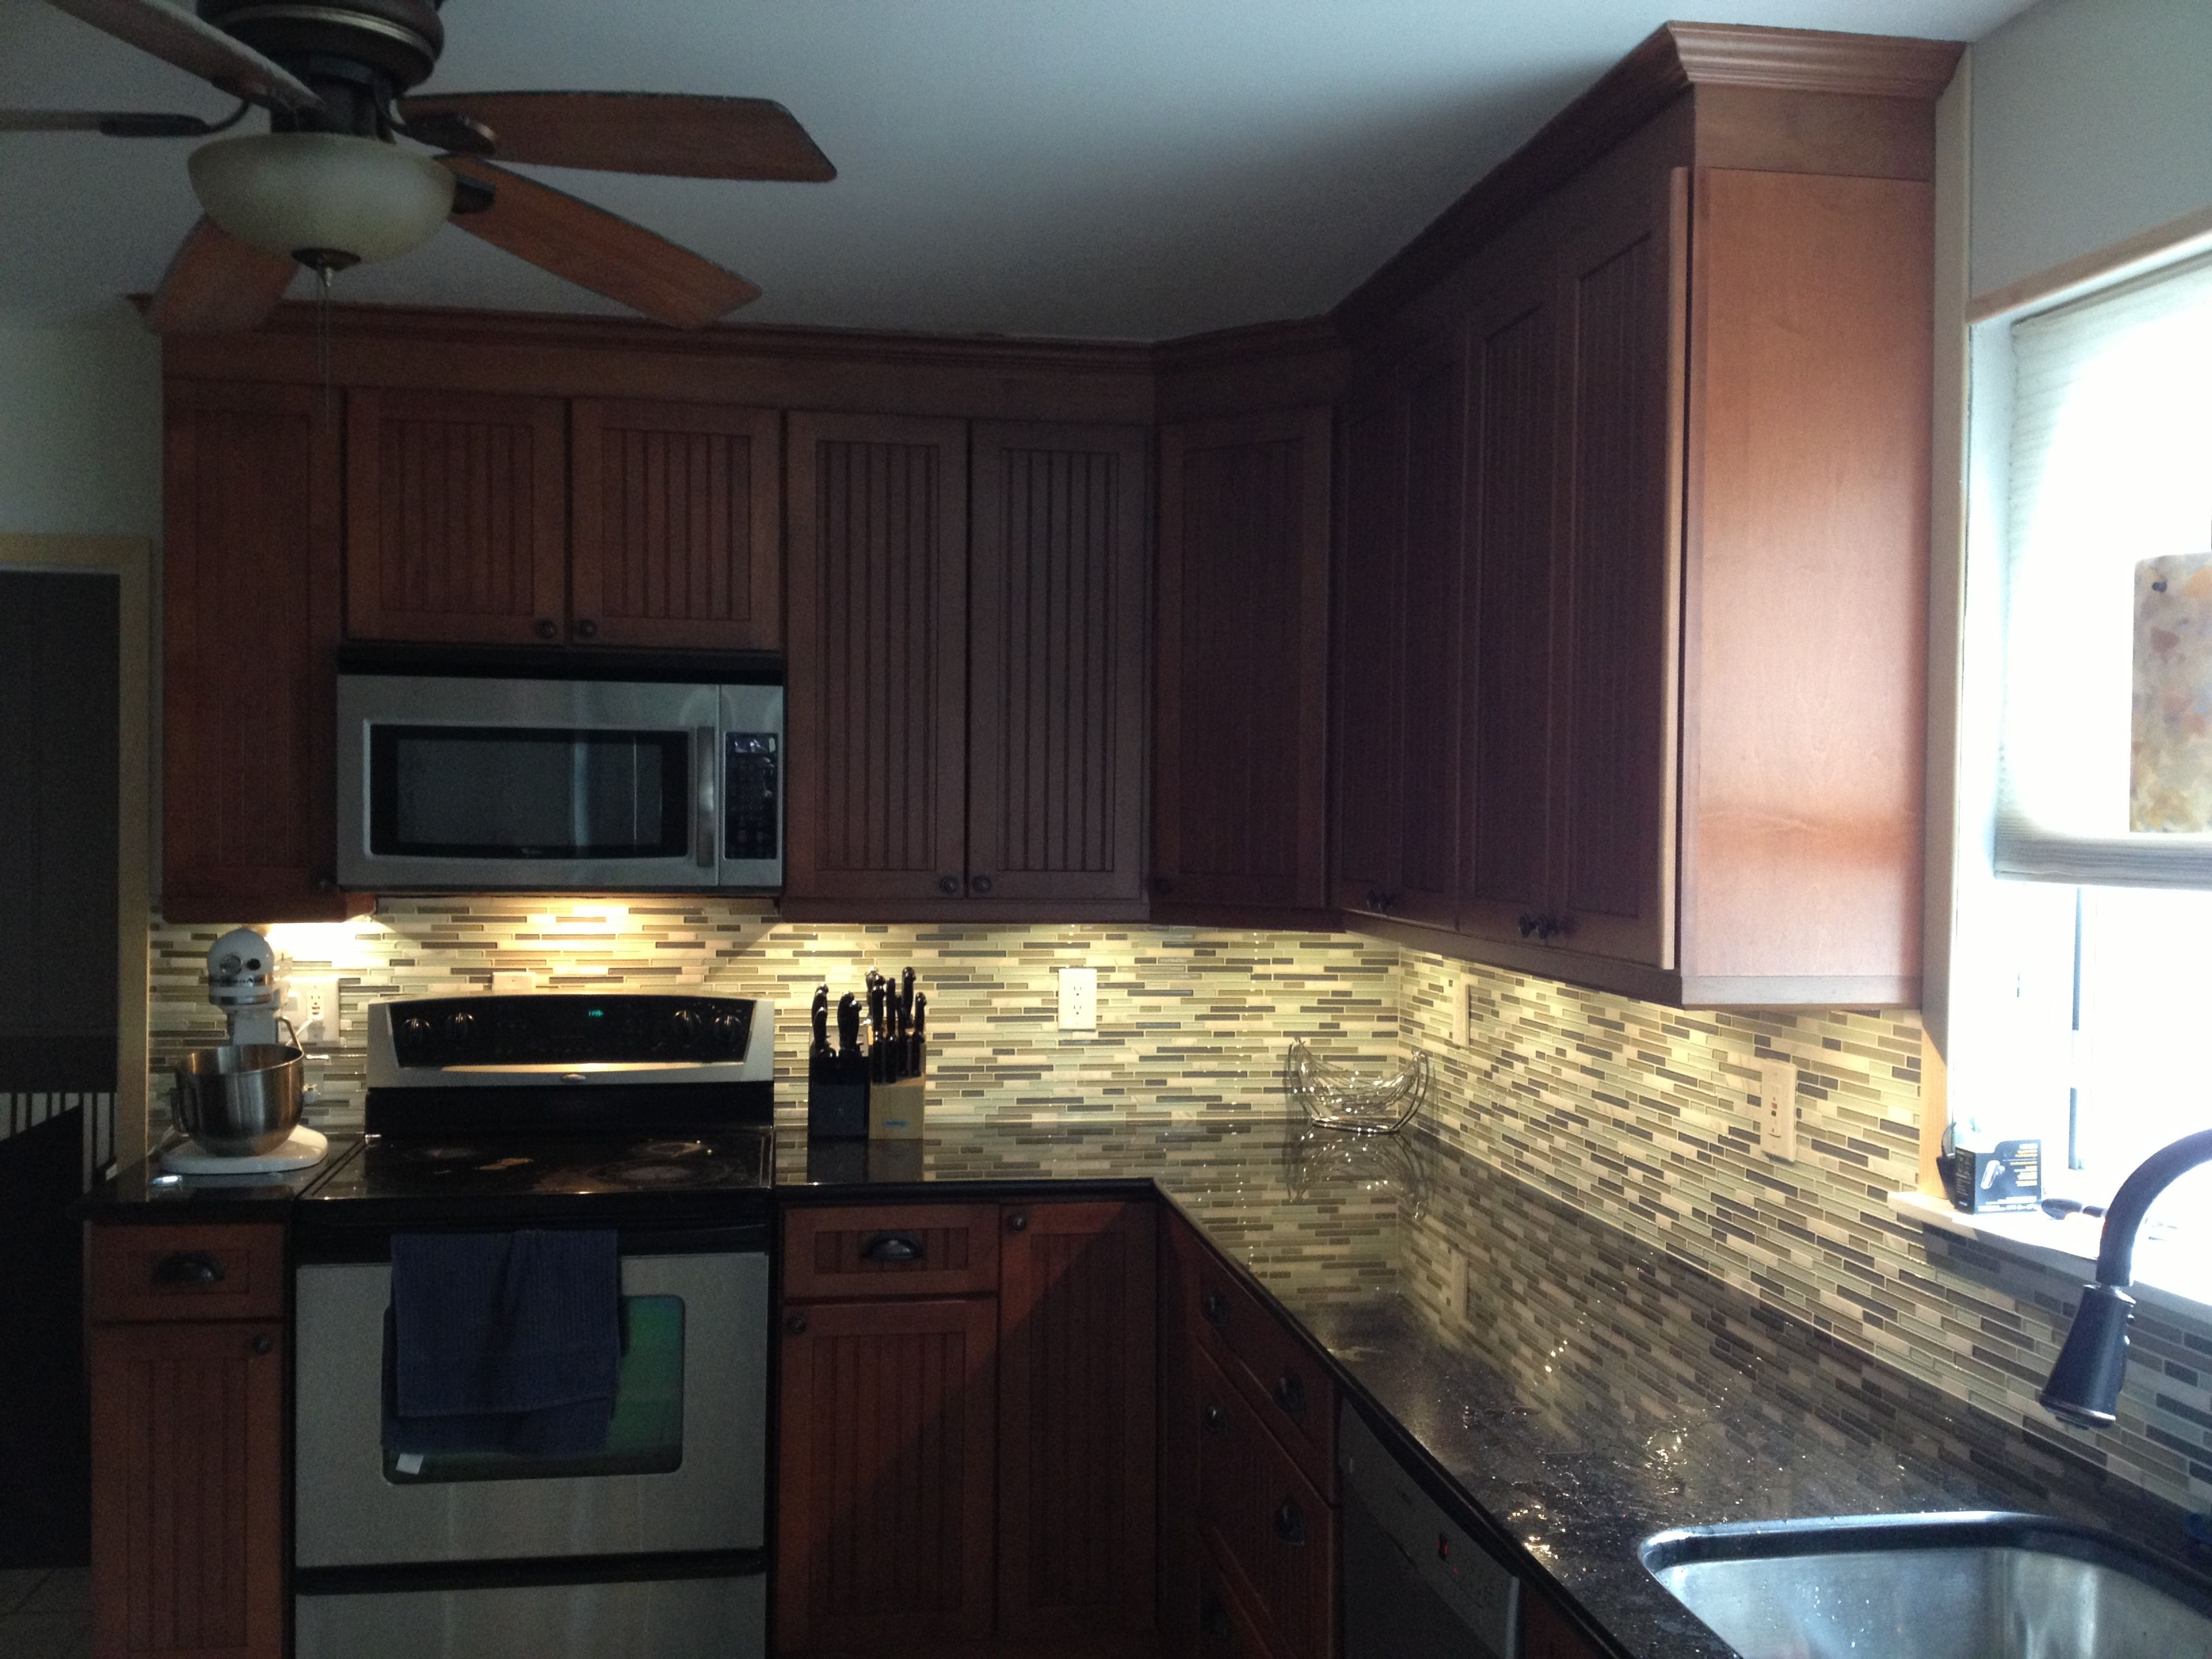 Backsplash Colors For Dark Cabinets Kraftmaid Maple Cinnamon Cabinets With Black Galaxy